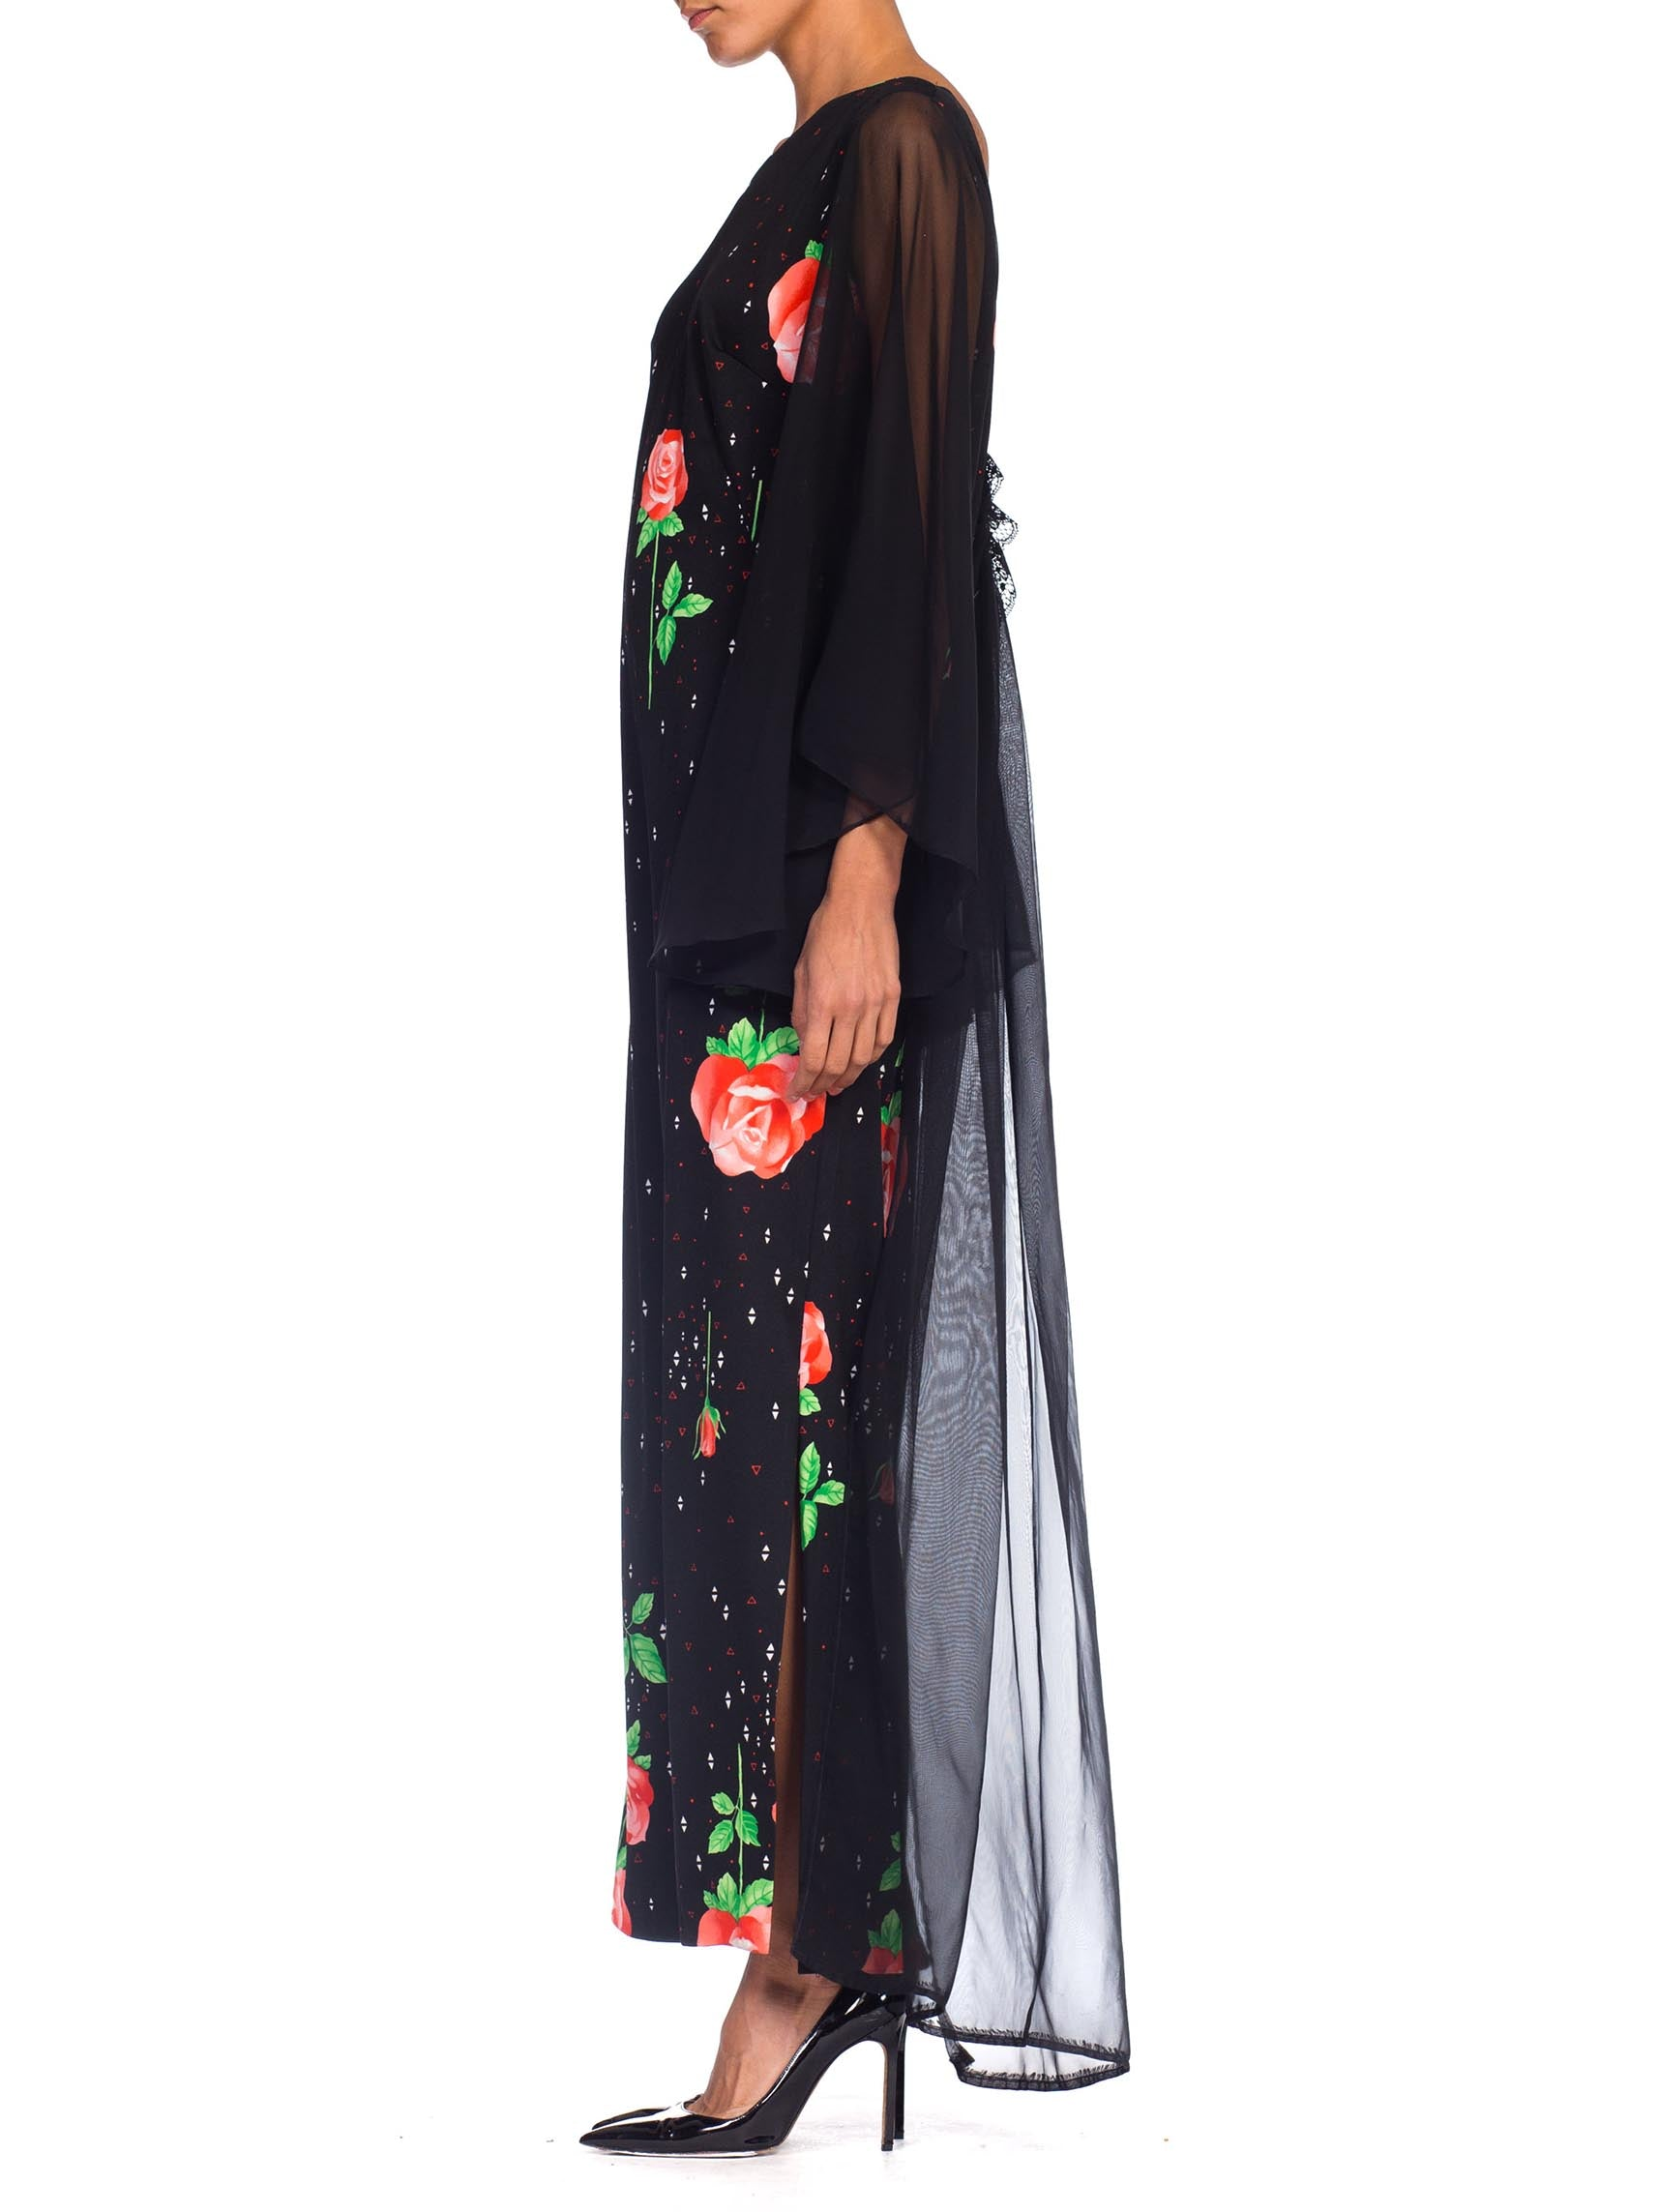 1970S Black Polyester Jersey Rose Print Maxi Dress W/ Chiffon Bell Sleeves & Cape, XL